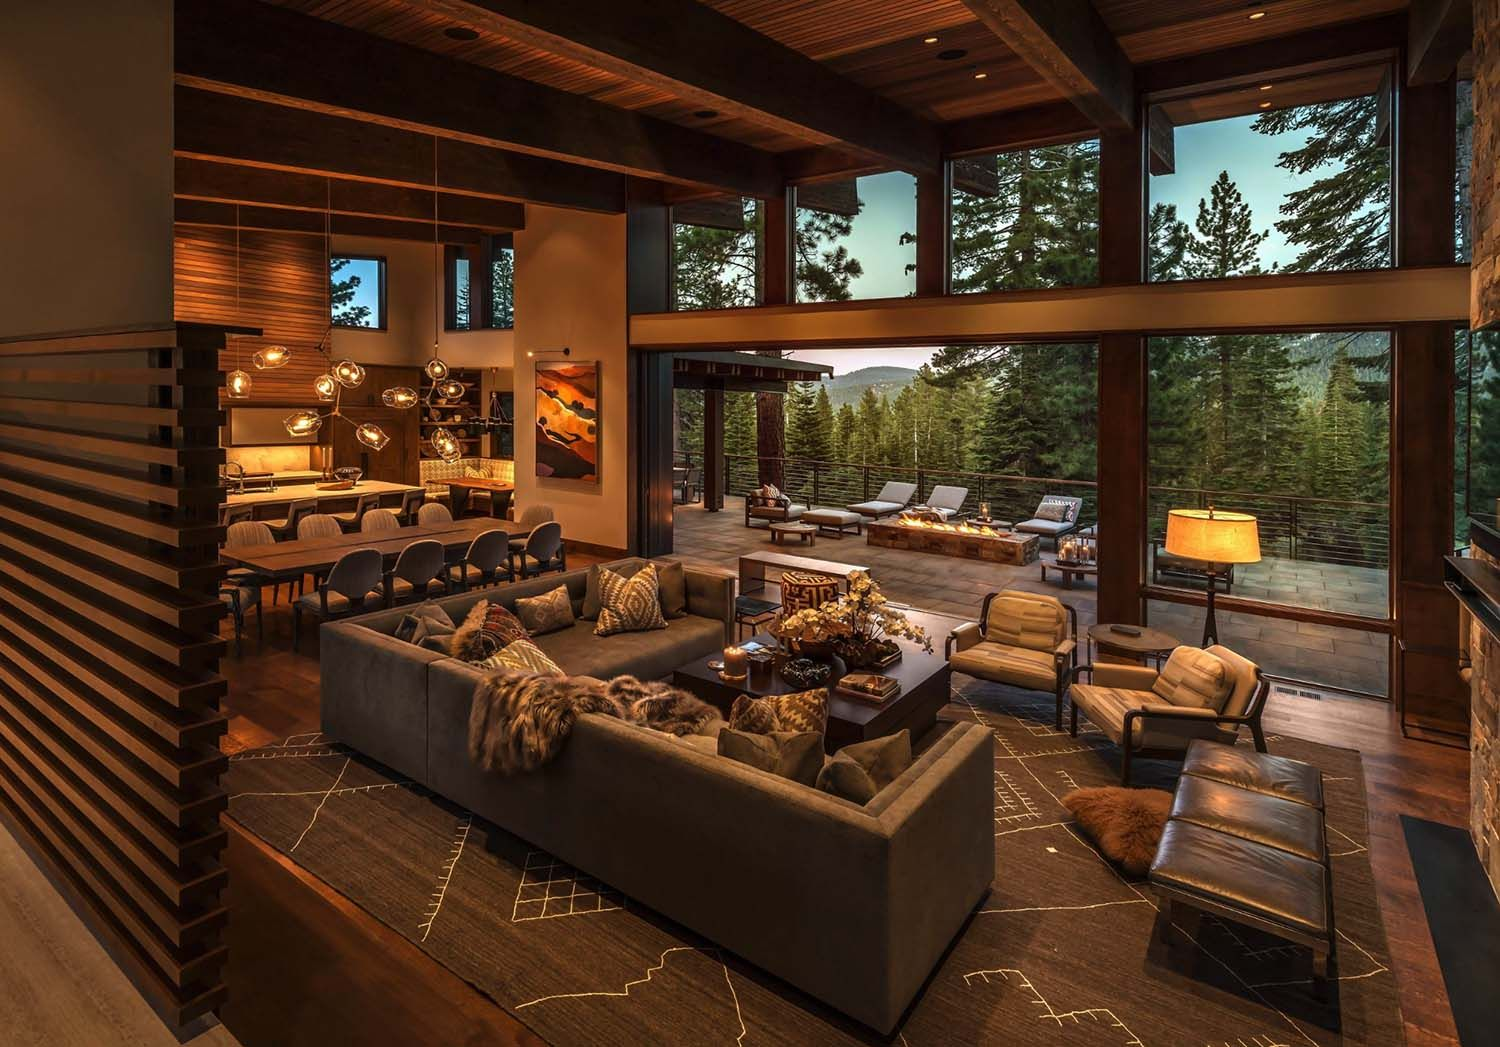 Warm and inviting retreat surrounded by the Sierra Nevada mountains is part of Warm Contemporary Living Room - This contemporary mountain retreat was designed by Walton Architecture, located in the private community of Martis Camp, Truckee, California